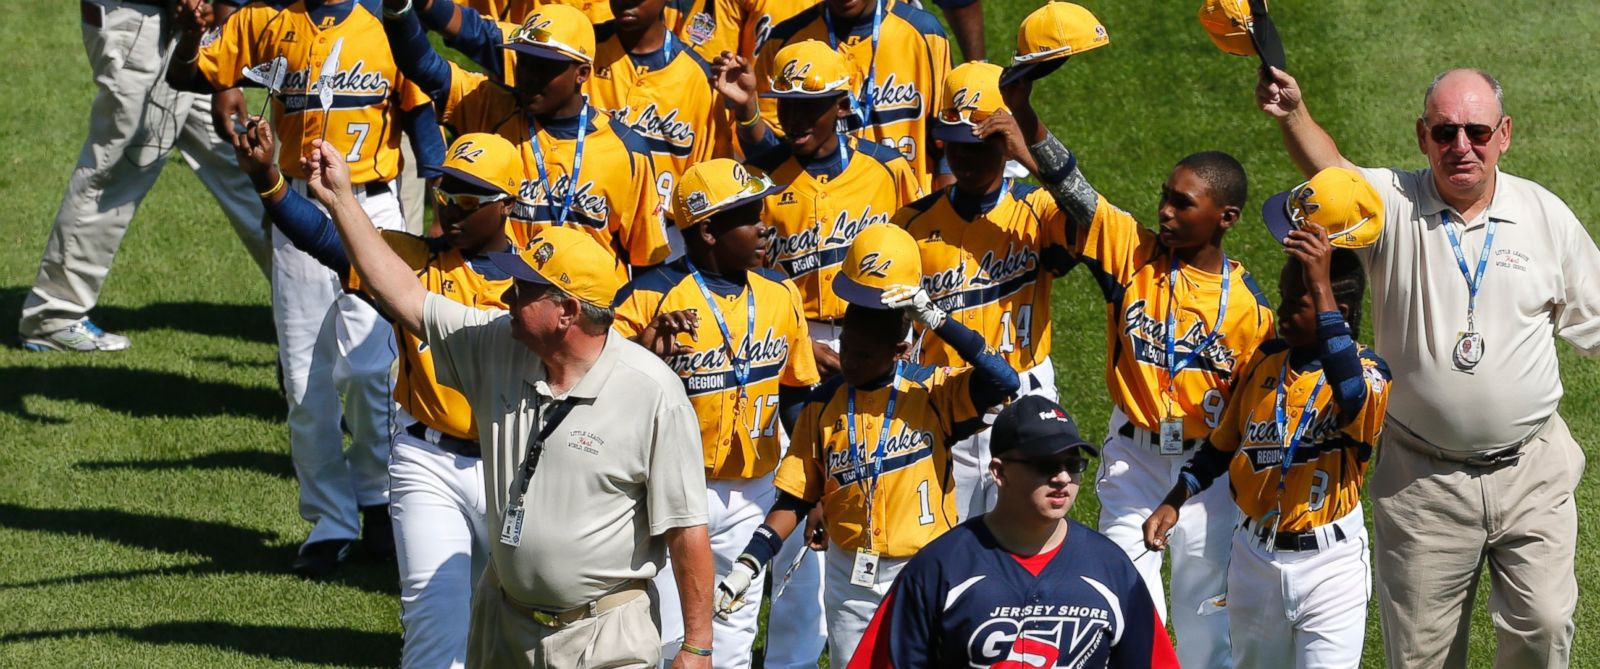 PHOTO: The Jackie Robinson West Little League baseball team from Chicago participates in the opening ceremony of the 2014 Little League World Series tournament in South Williamsport, Pa. on Aug. 14, 2014.